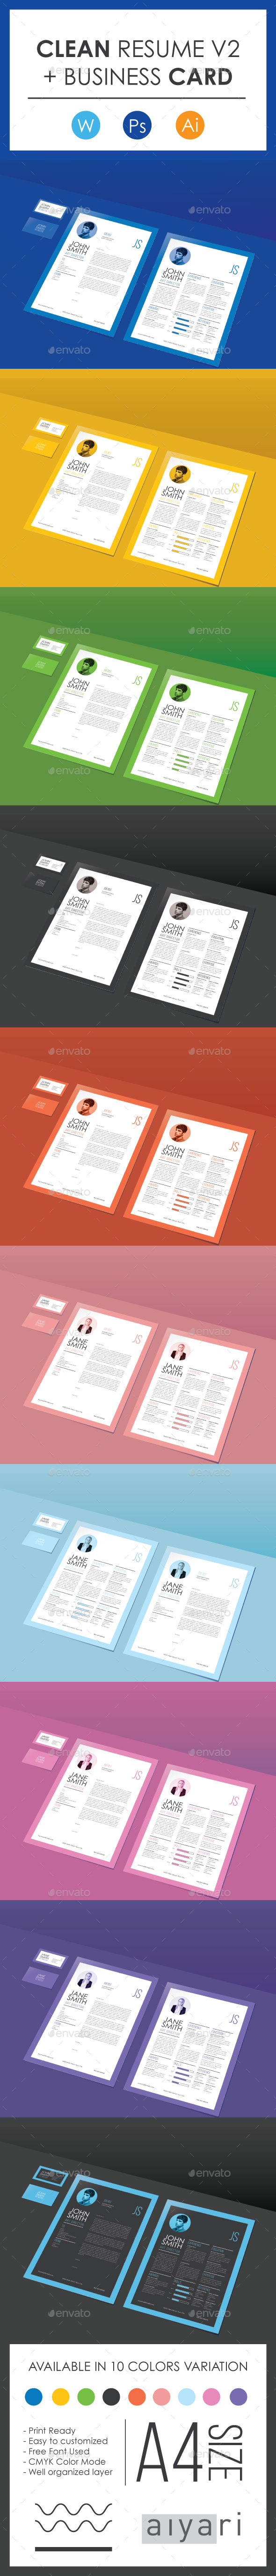 Clean CV & Resume V2 with Business Card - Resumes Stationery